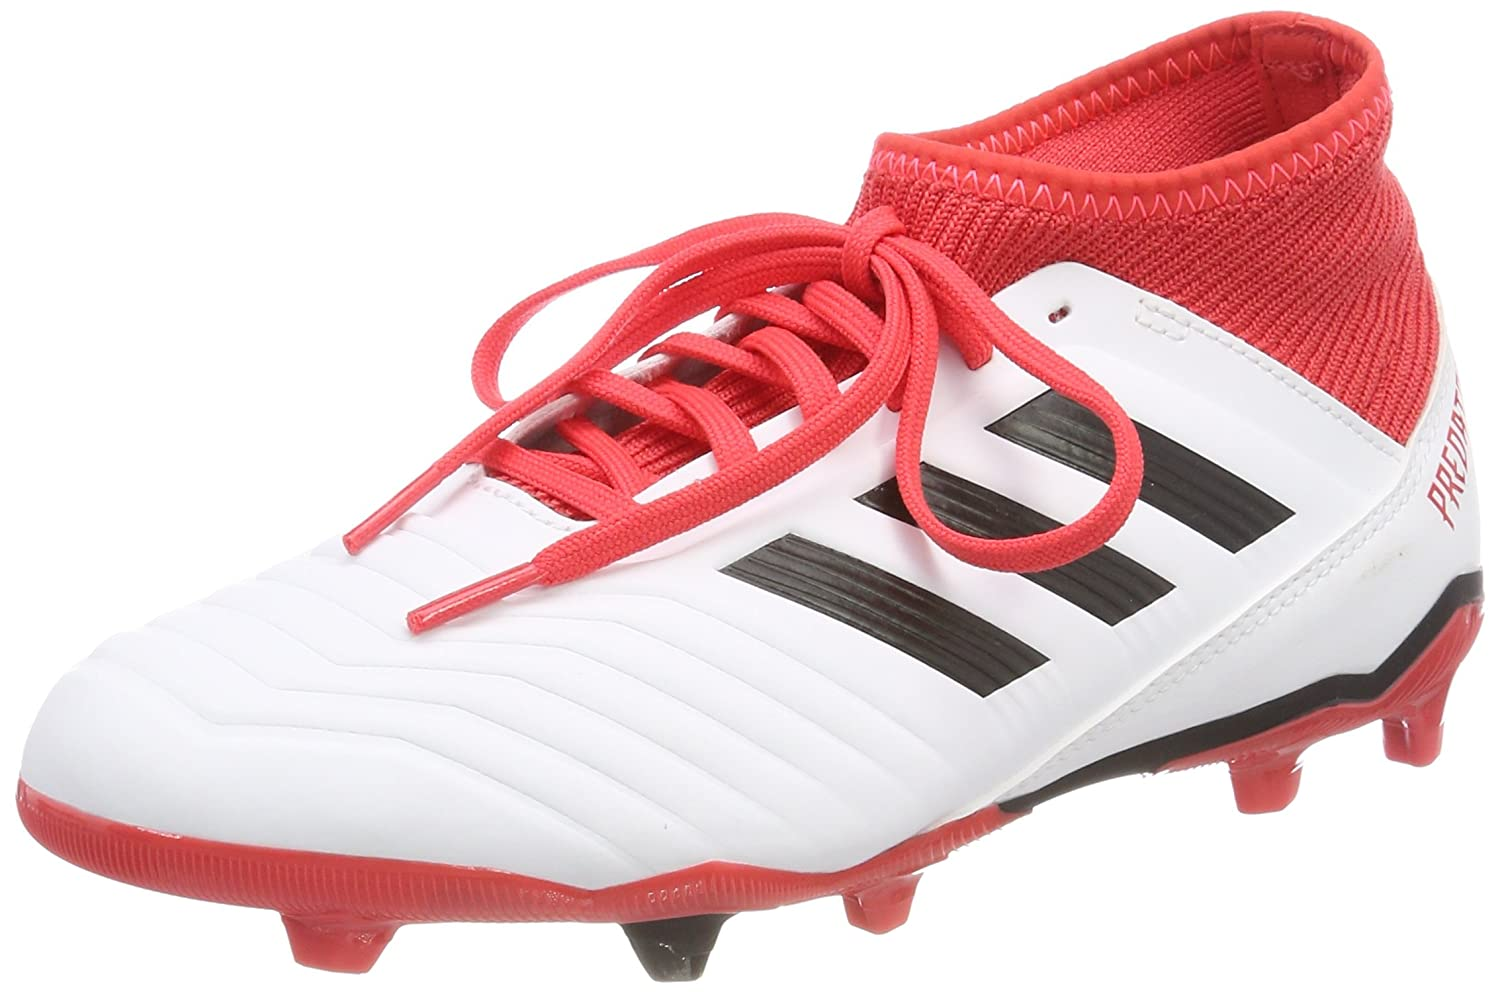 22f5fbe89d54 Adidas Boy s Predator 18.3 Fg J White Sports Shoes-4 UK India (36.67 EU)  (CP9011)  Buy Online at Low Prices in India - Amazon.in